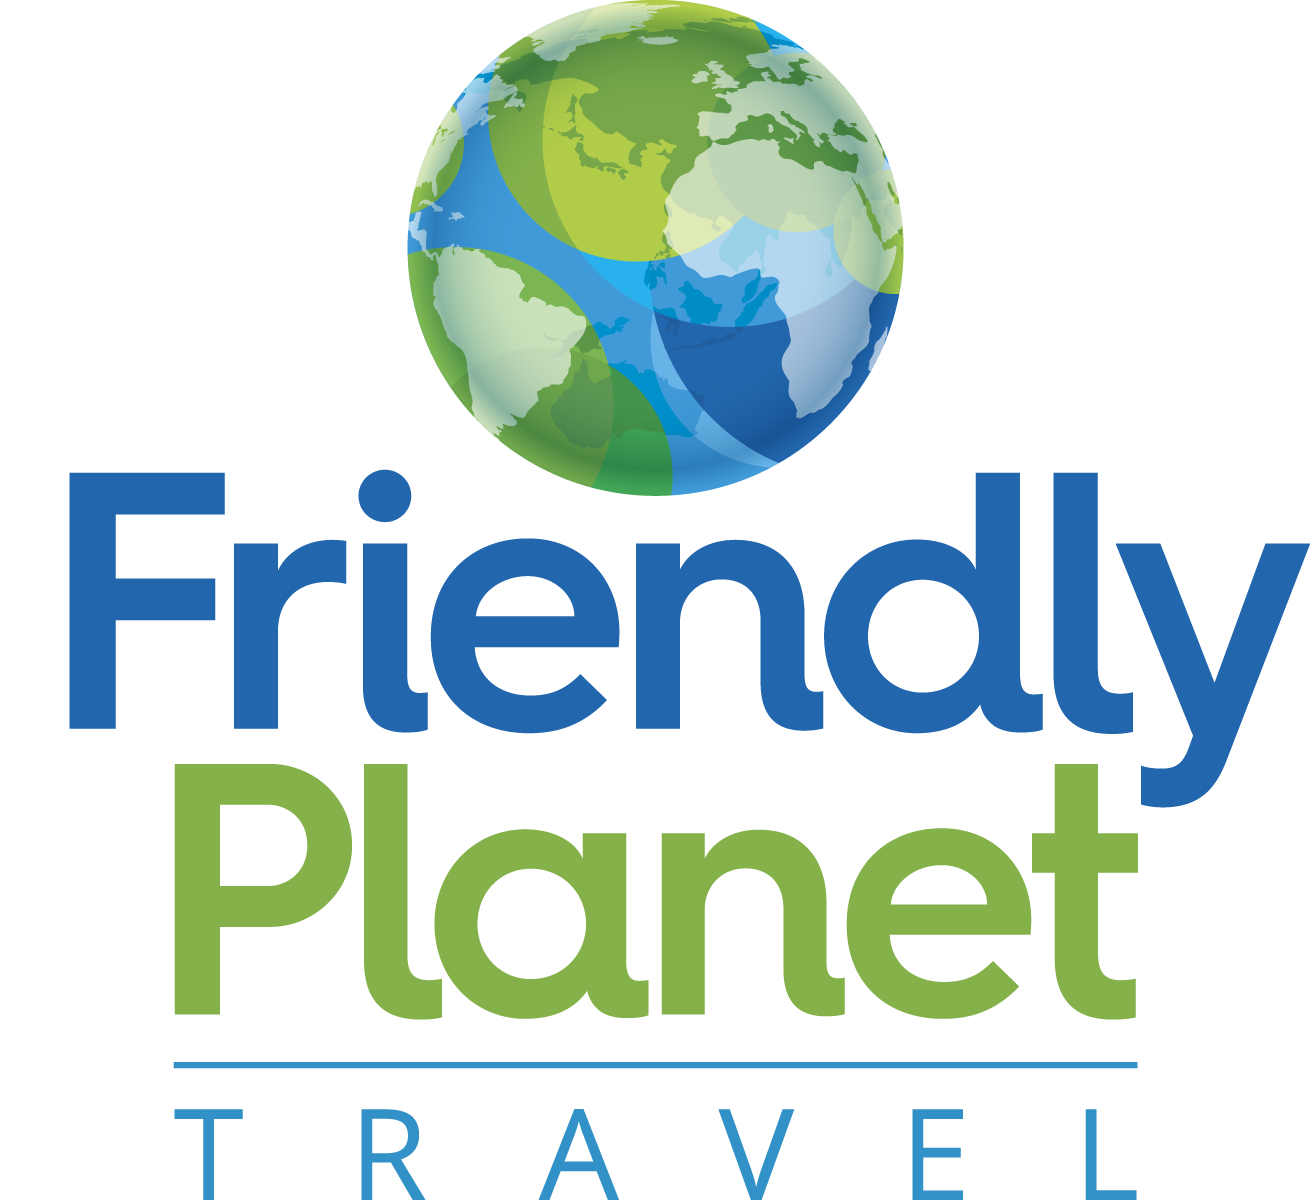 friendly Official pet friendly hotels search offers complete lists of pet friendly hotels in all cities worldwide.